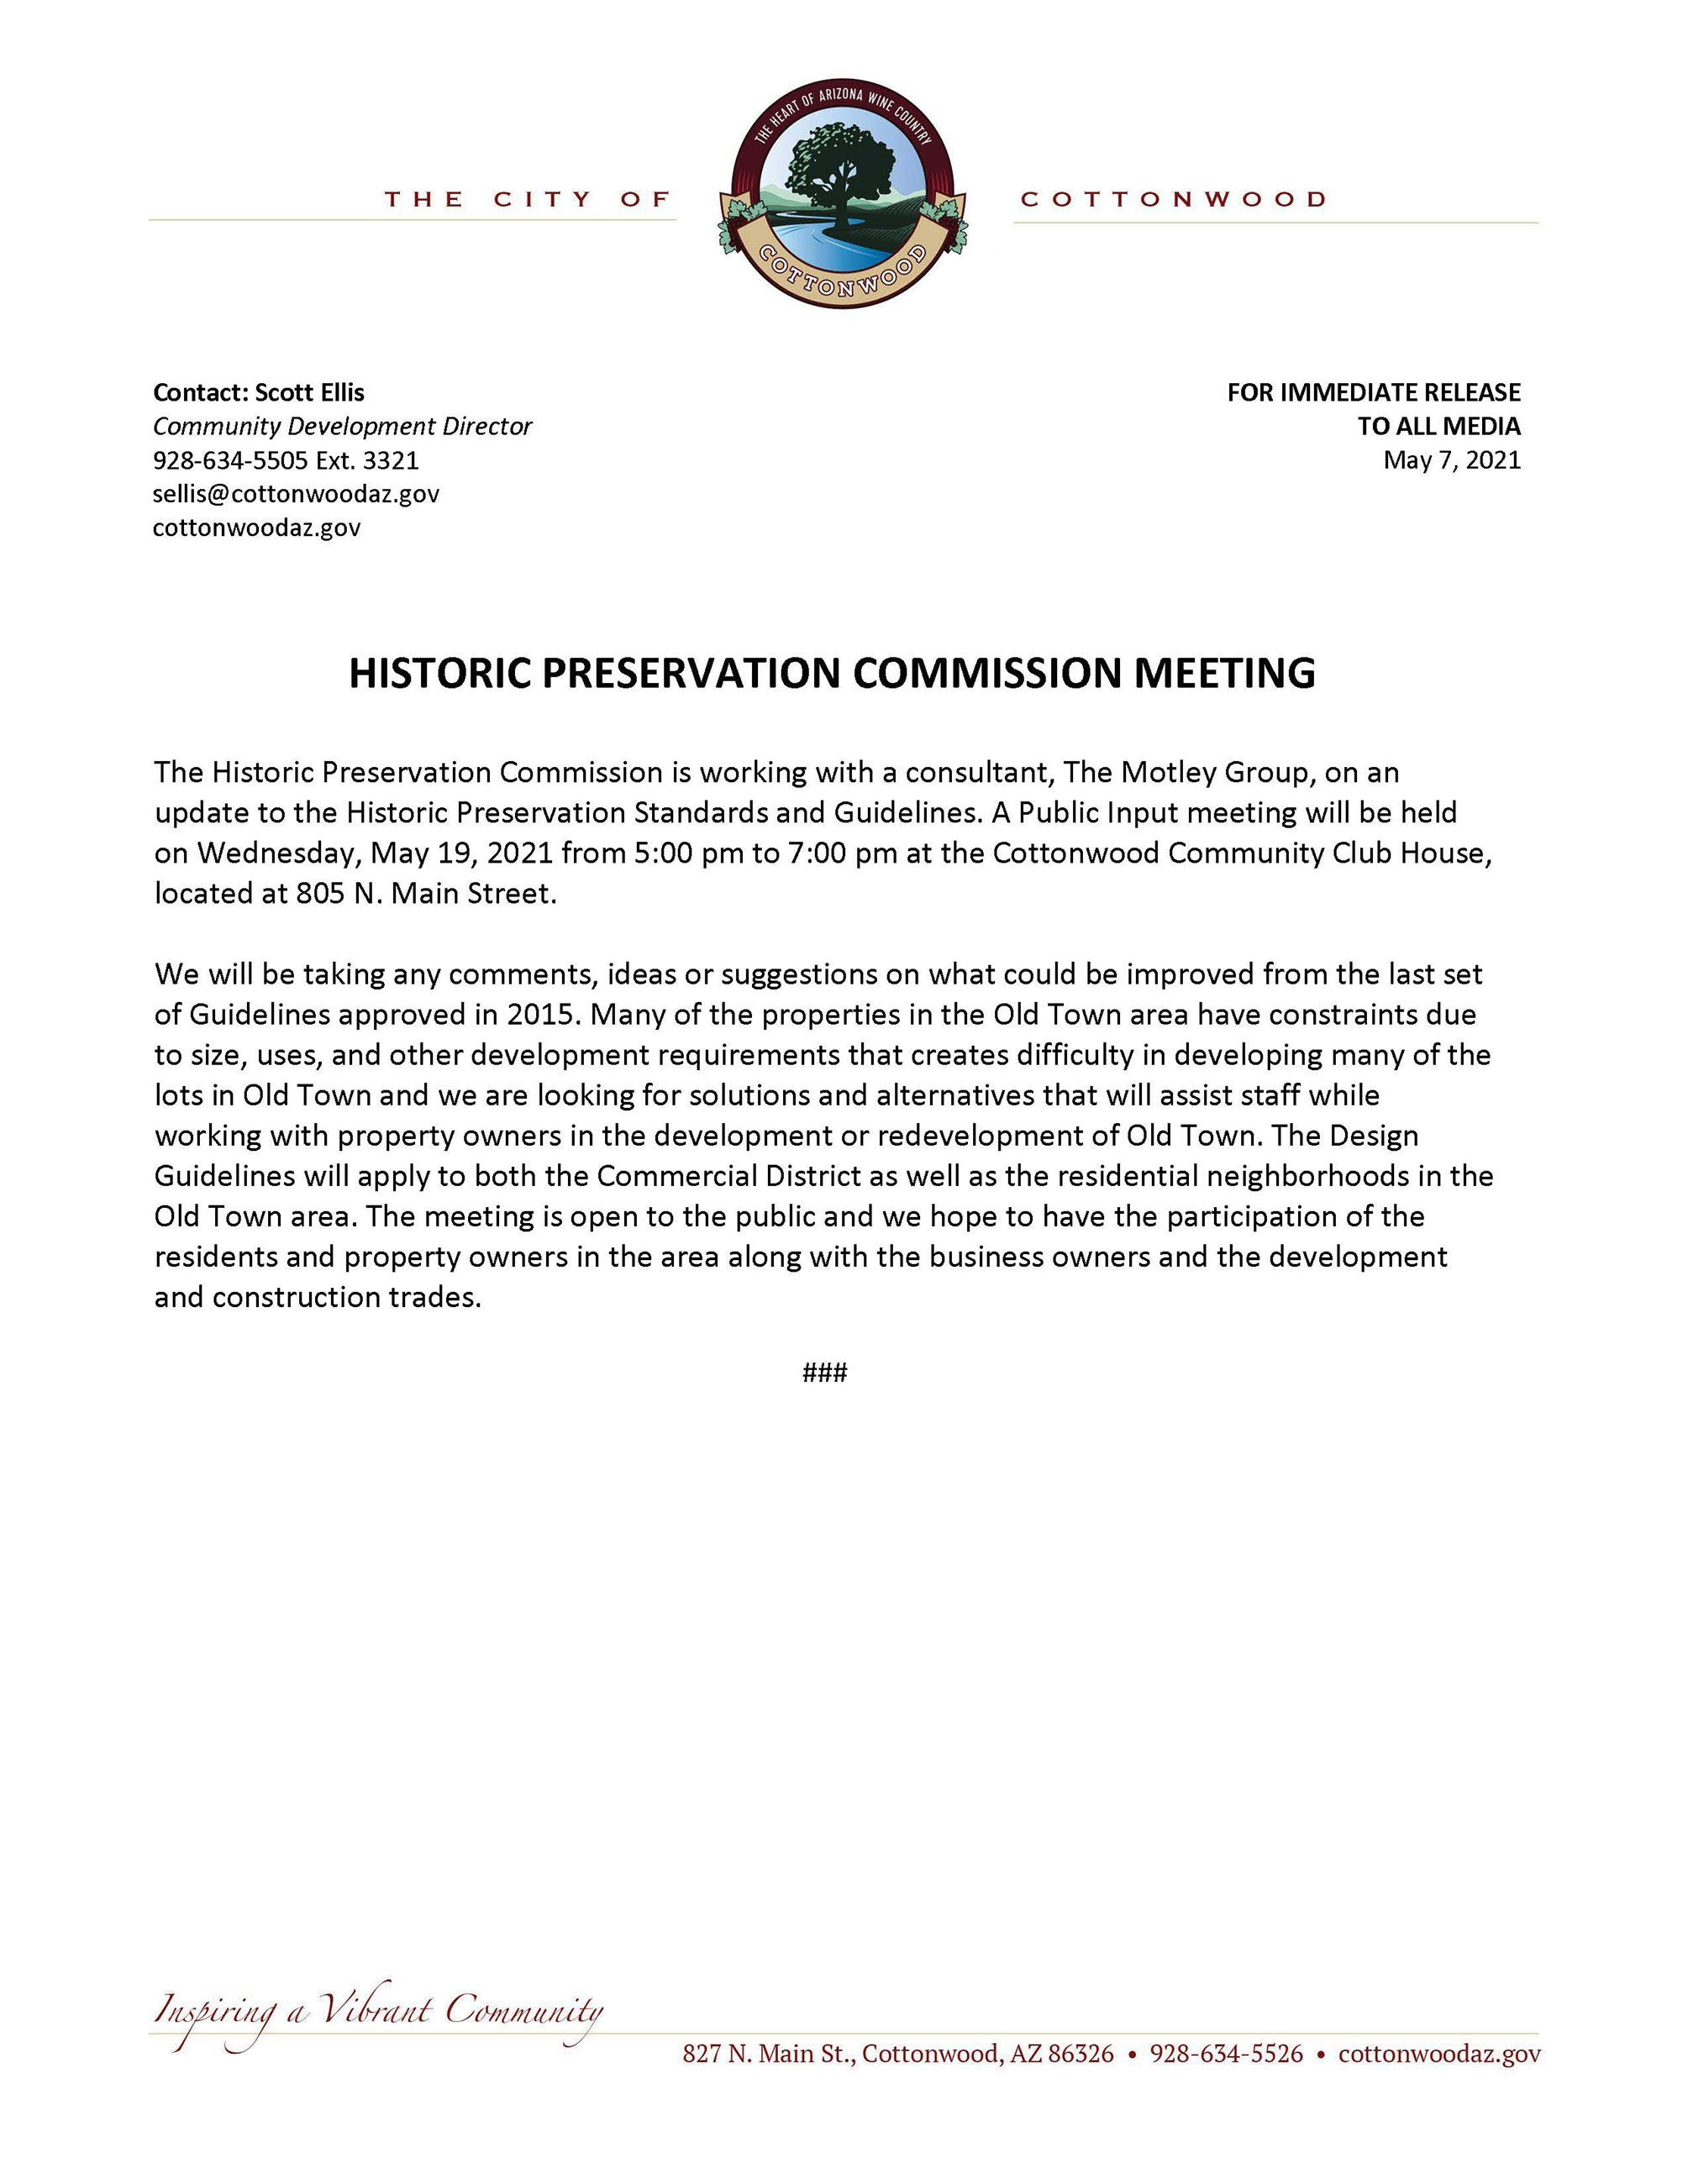 PRESS RELEASE - Historic Preservation Commission Meeting